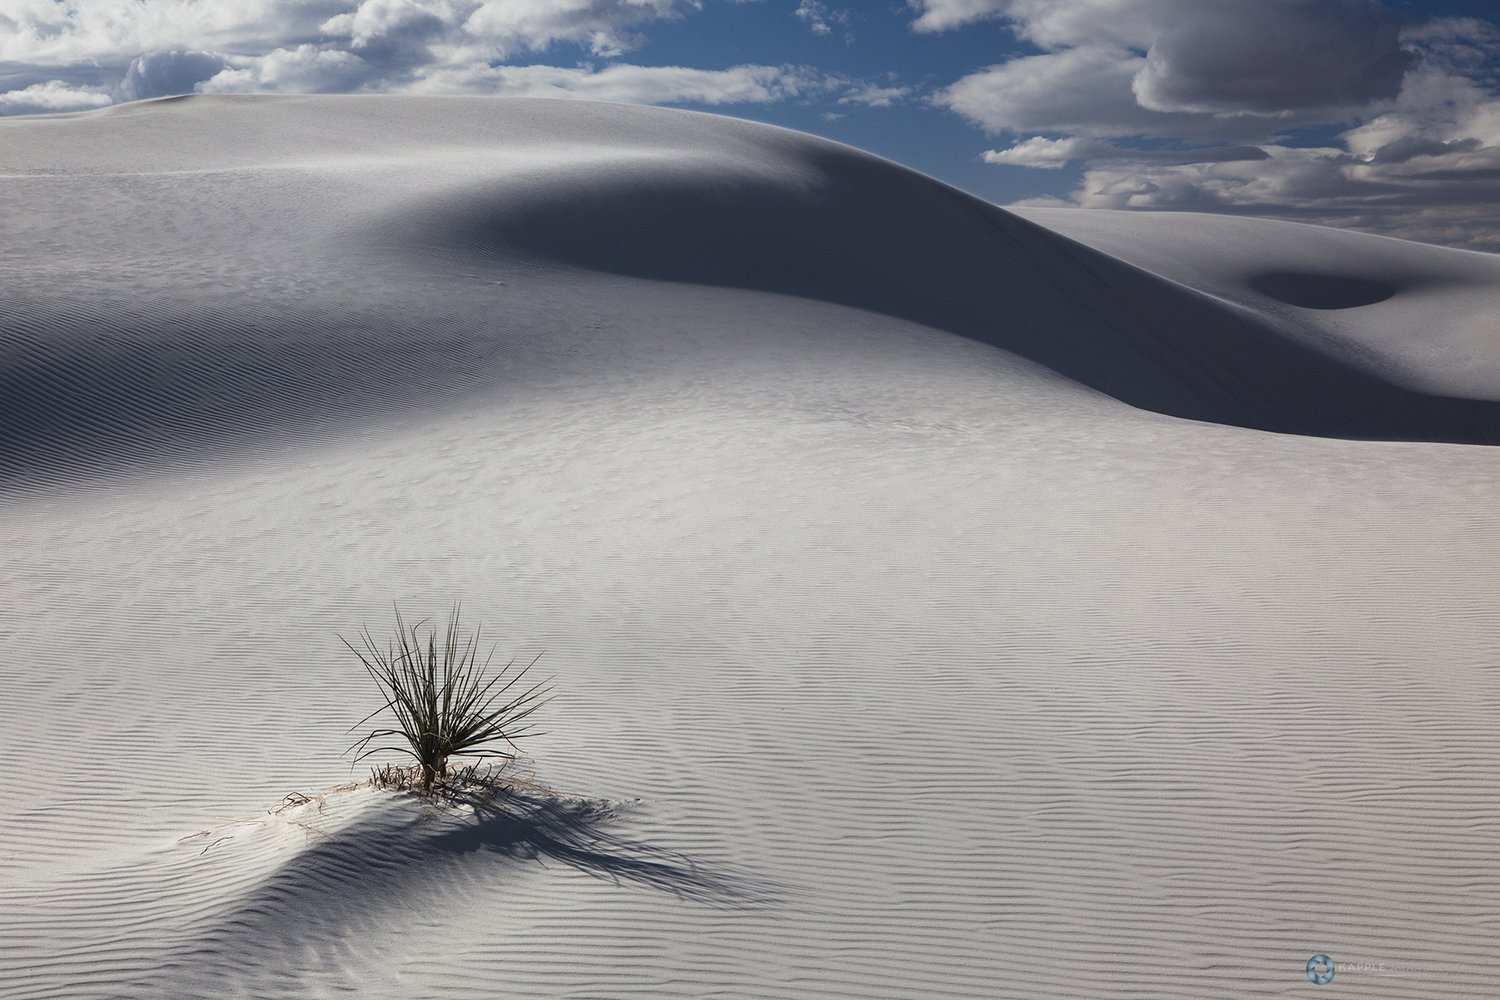 White Gypsum sand dunes in a desert with mountains, White Sands National Monument, New Mexico, USA